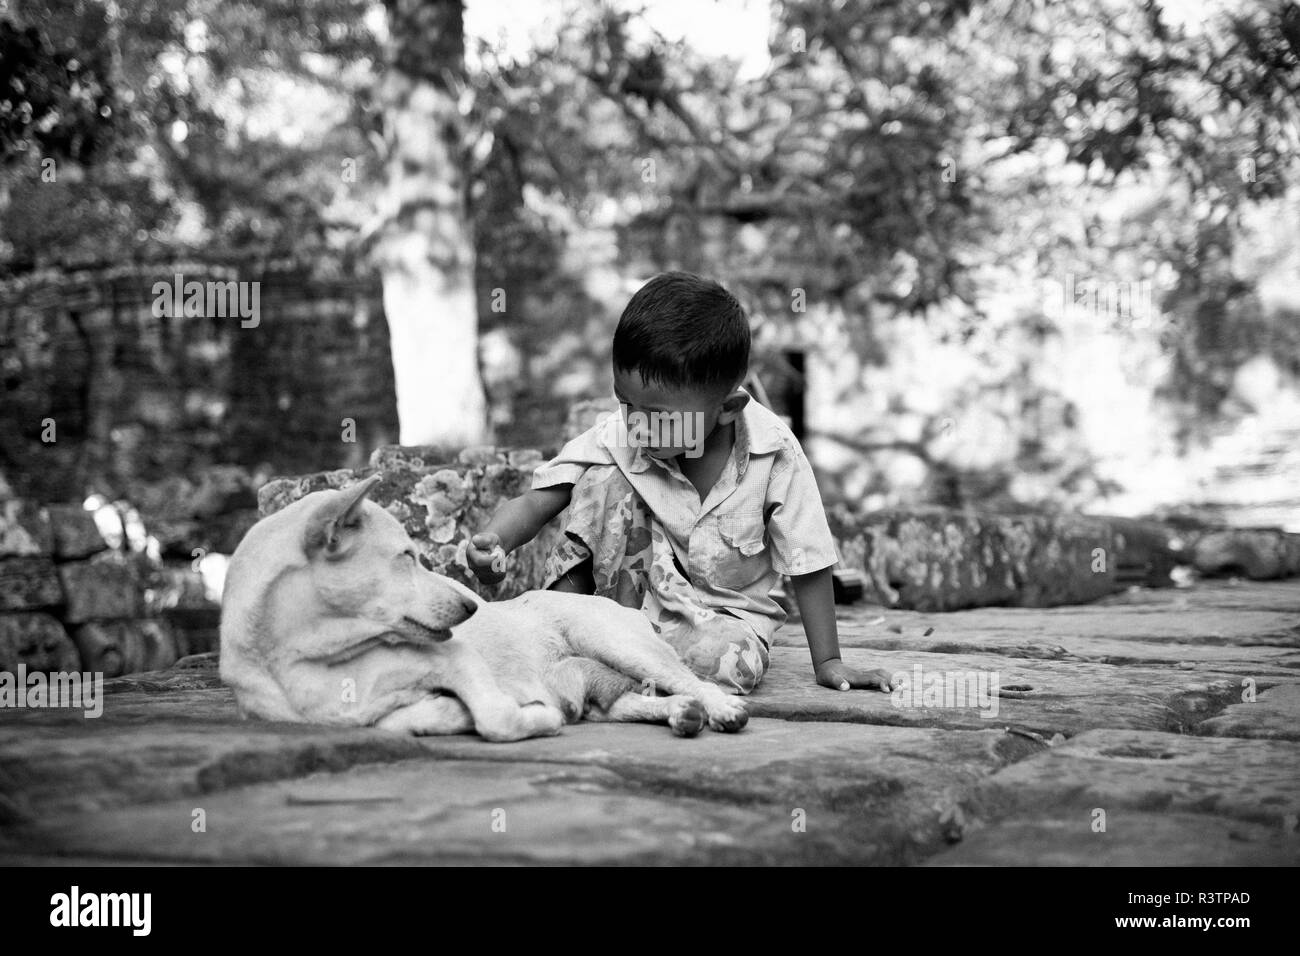 Siem Reap, Cambodia - September 12, 2010: Cambodian boy near some ruins playing with his dog. - Stock Image